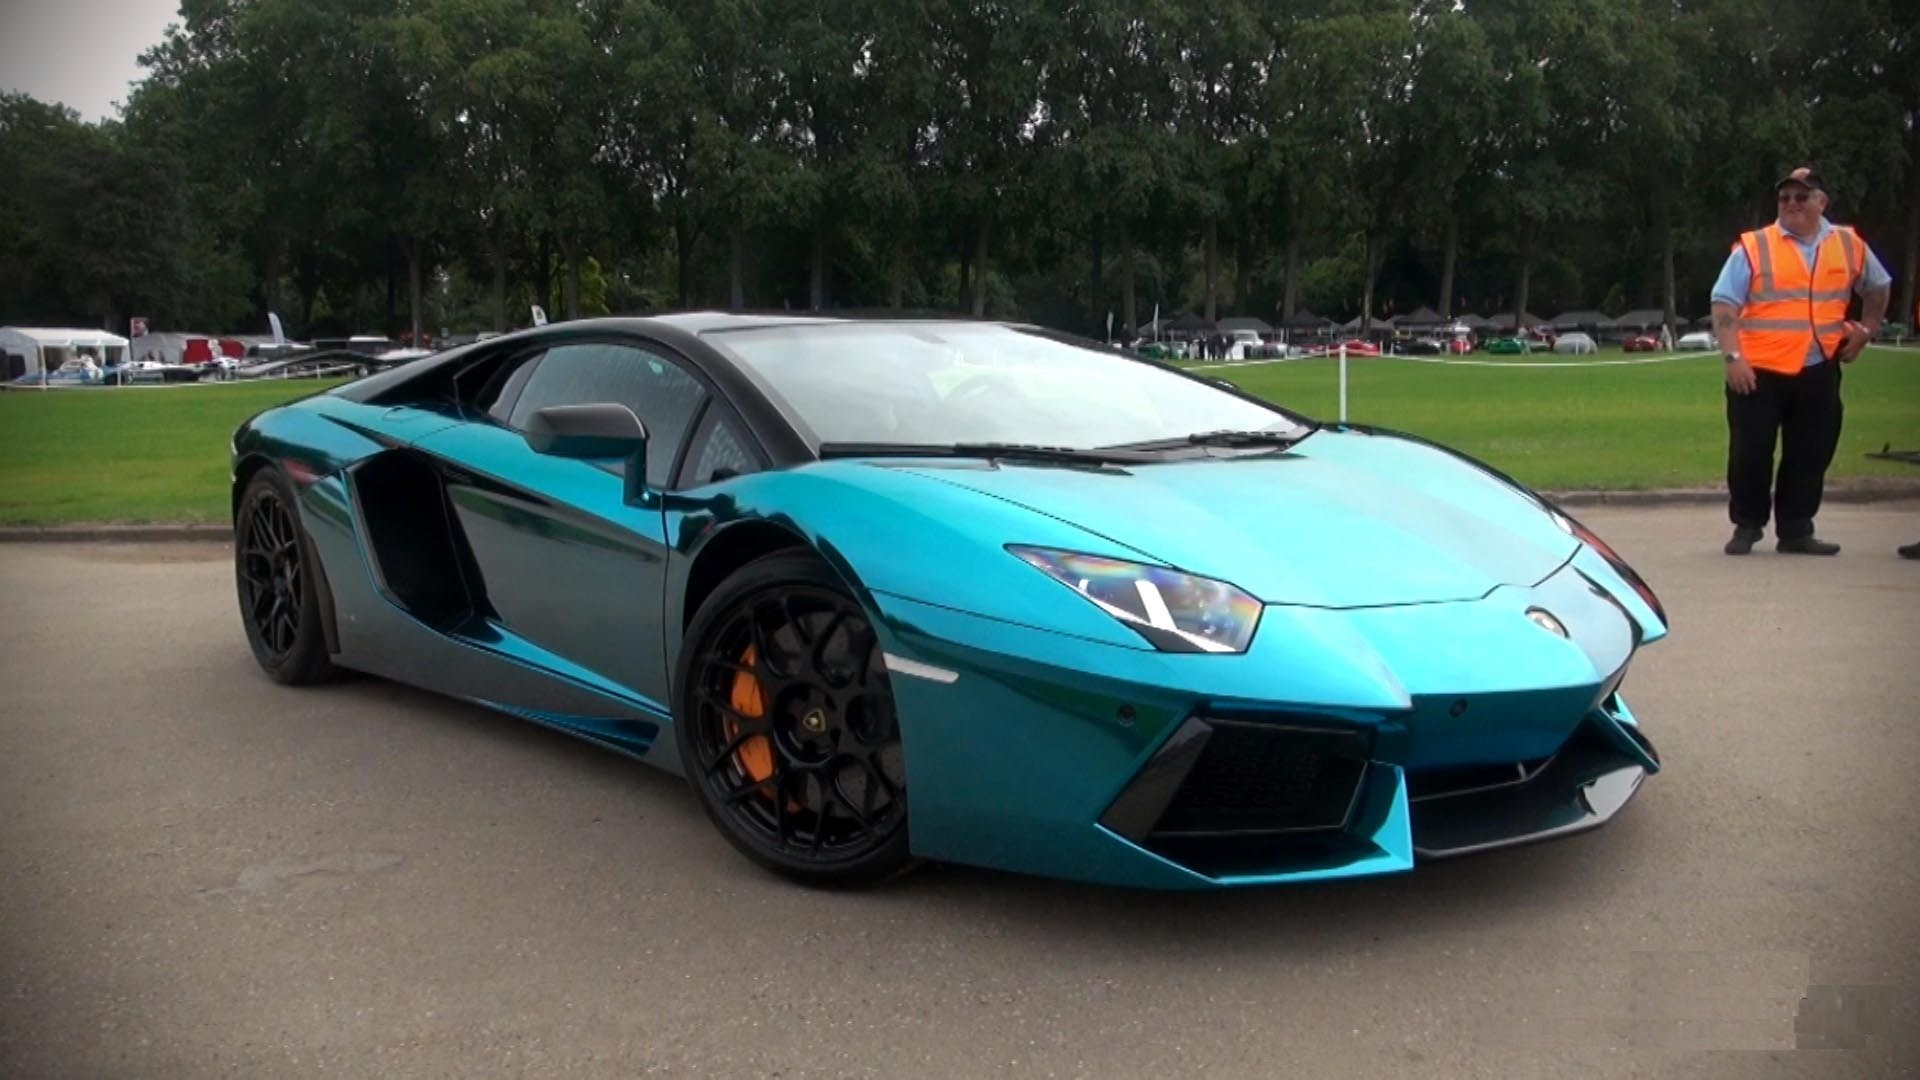 Wallpaper Hd 1080p Lamborghini Aventador Wallpaper 1080p HD 1920x1080